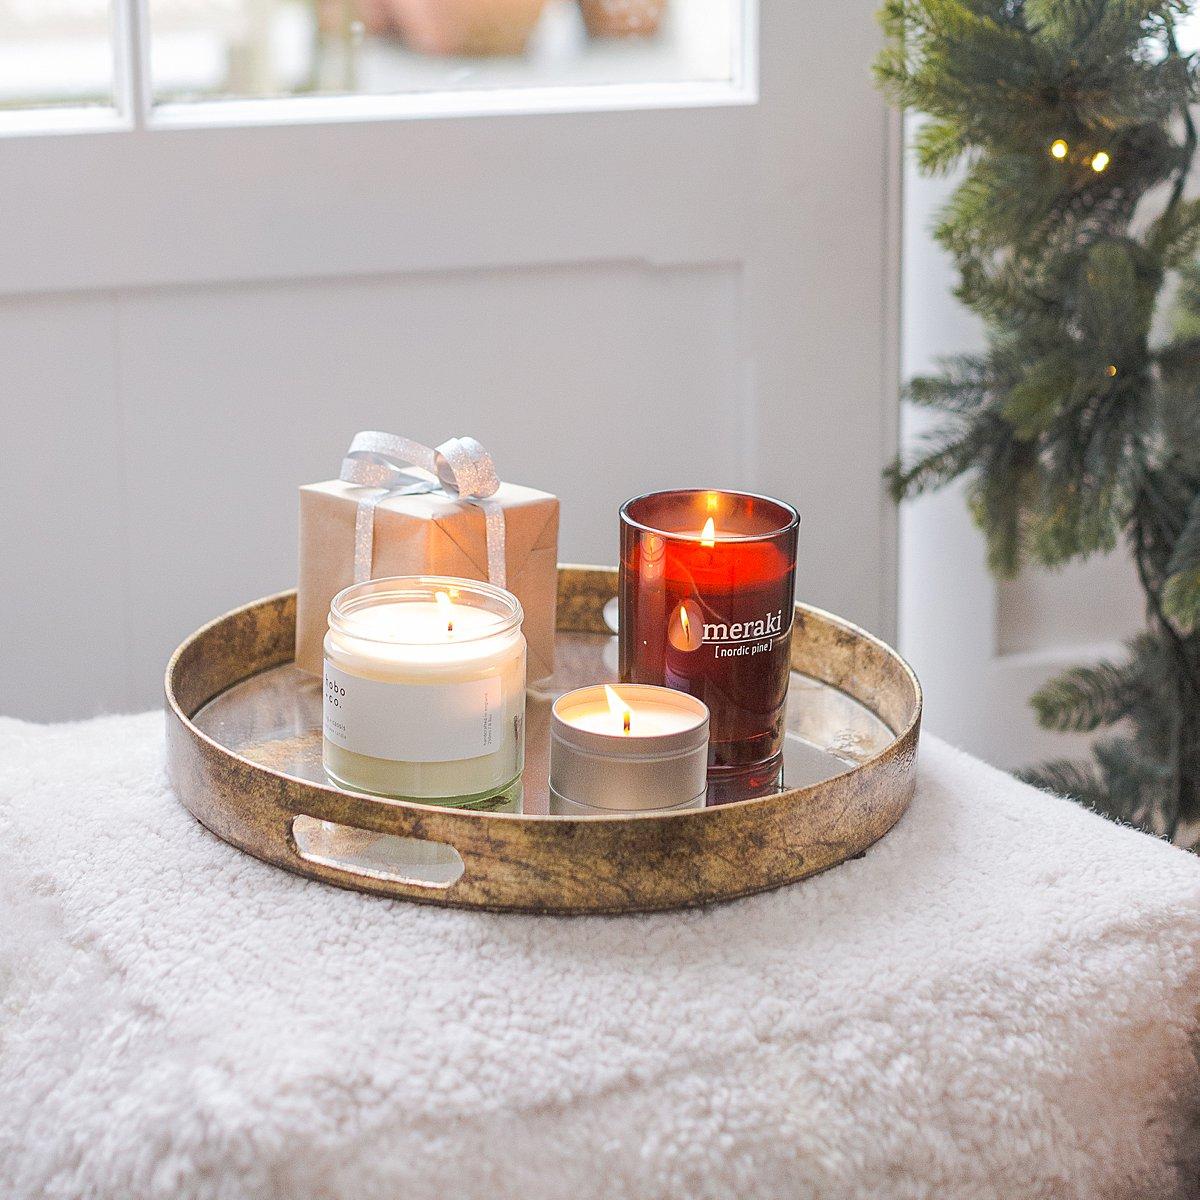 Lifestyle Christmas shoot for Jo&Co. Styled lifestyle editorial photography by Marianne Taylor.